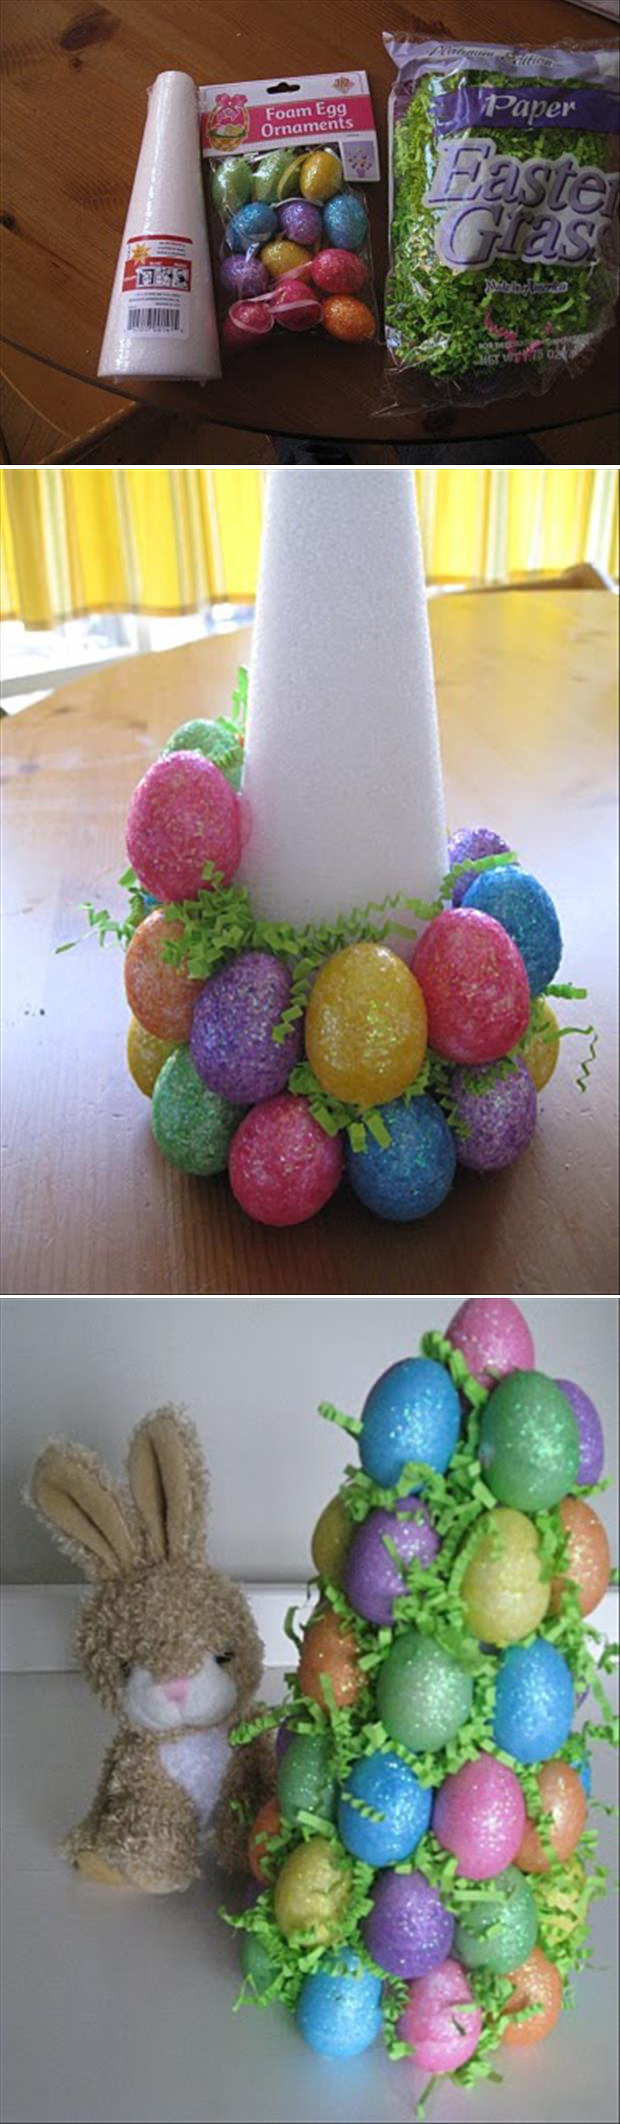 easter crafts (1)